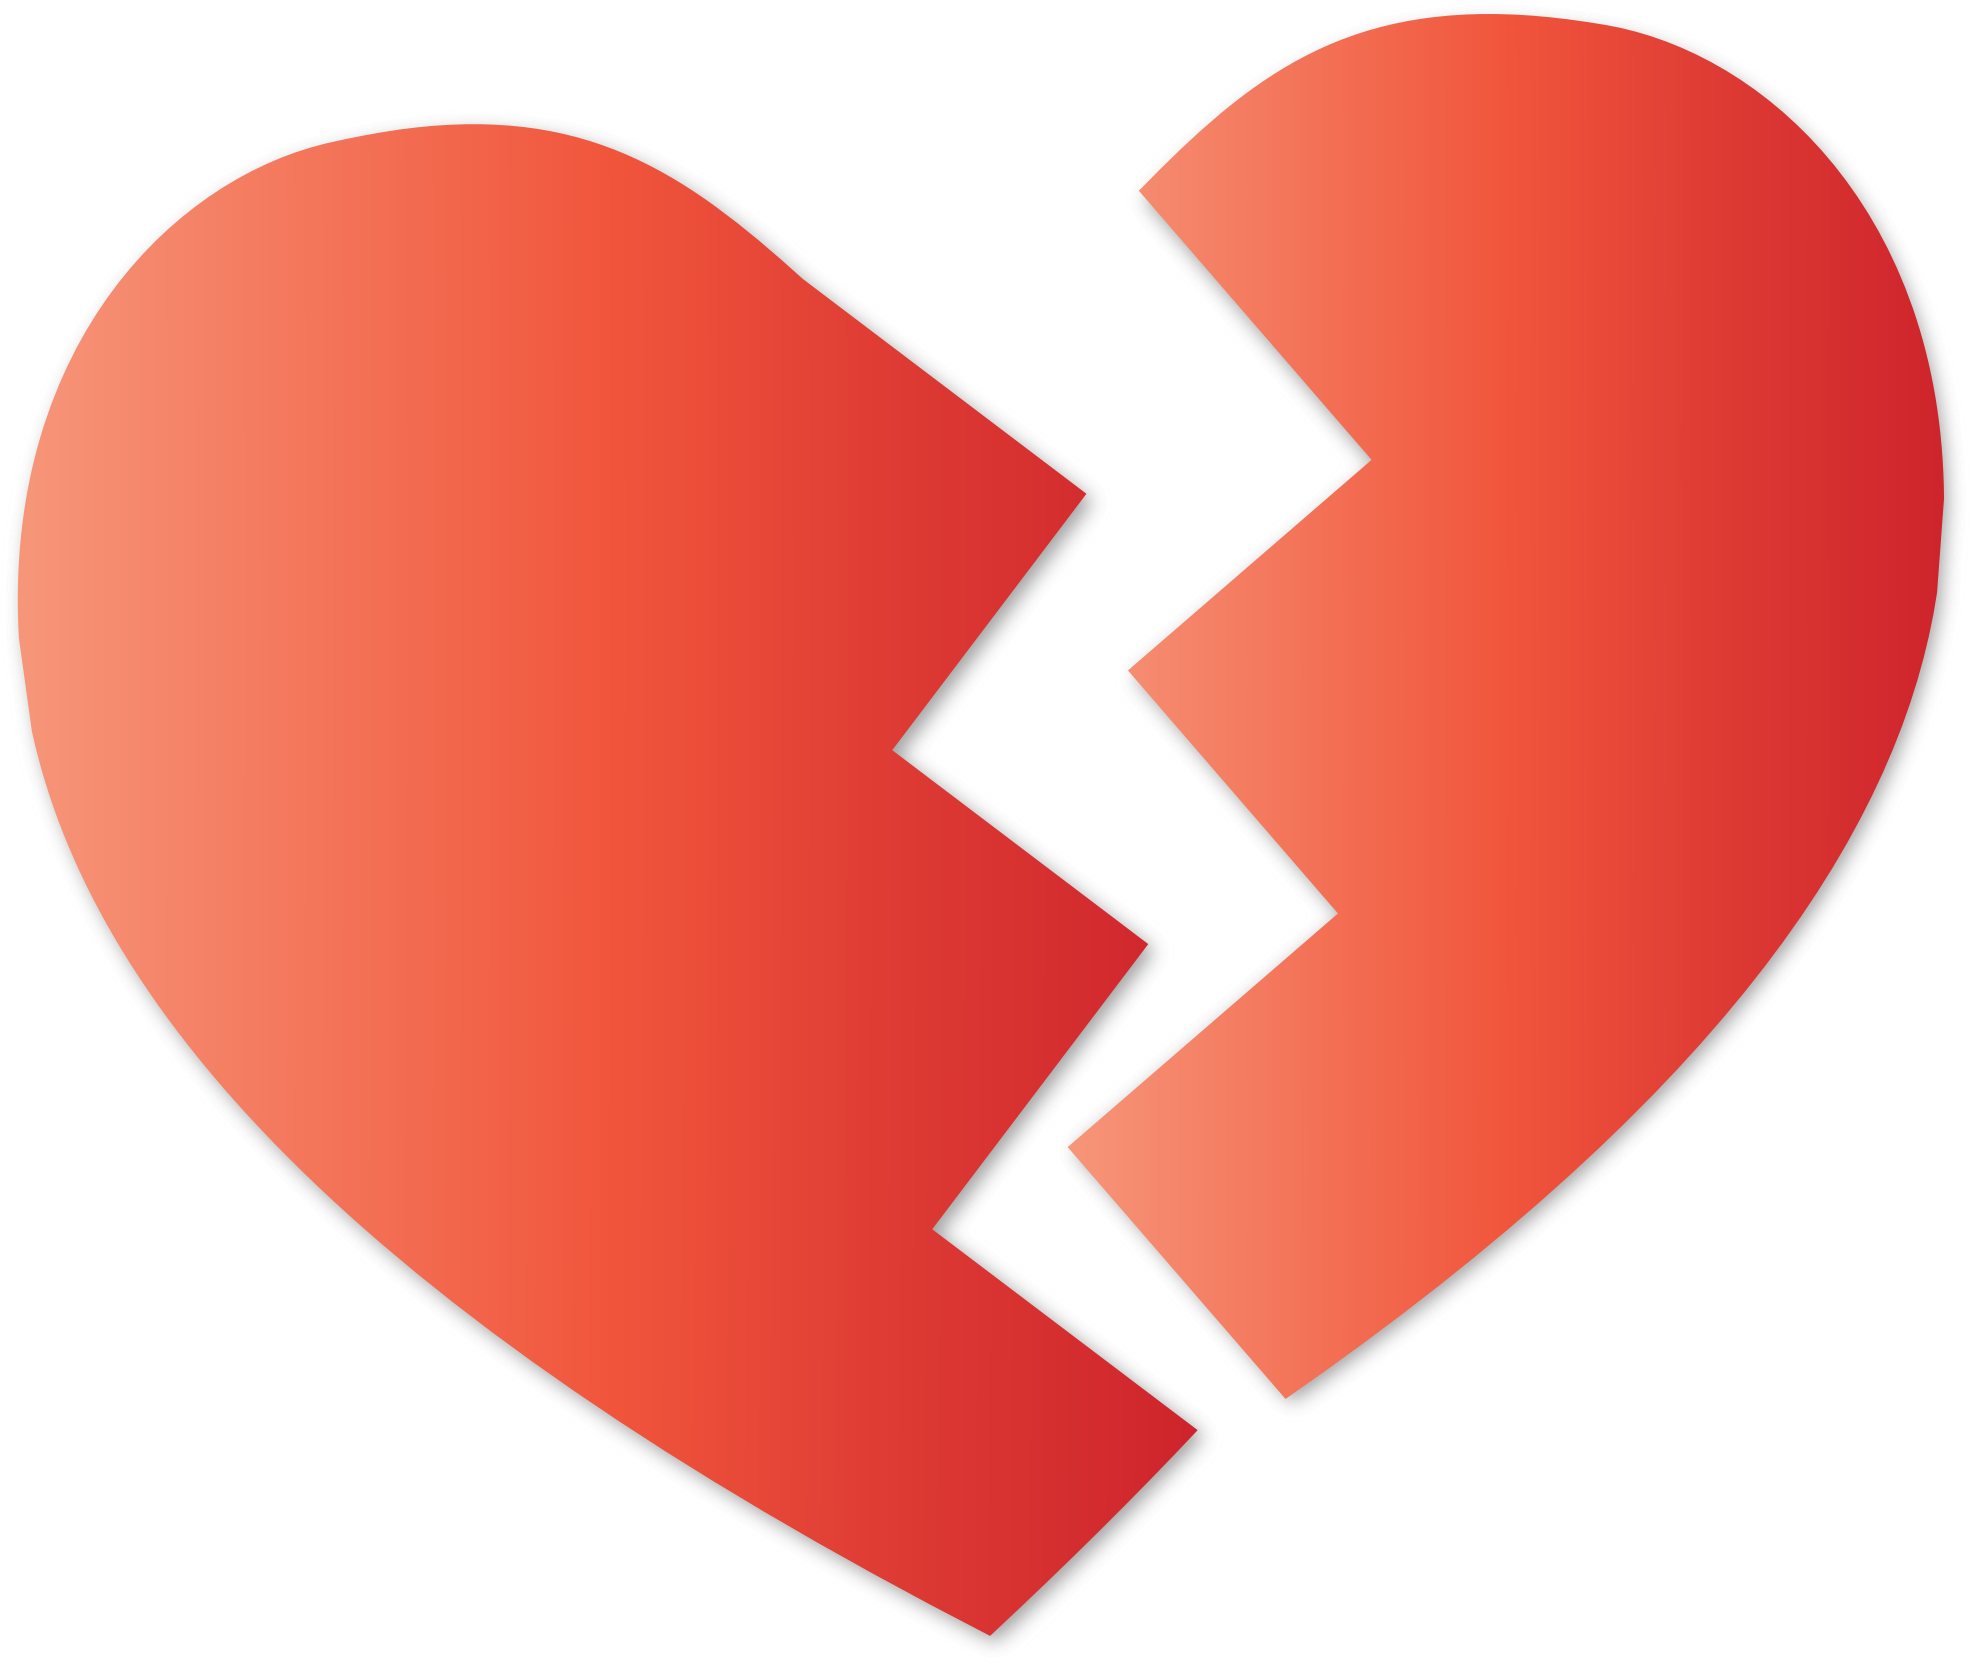 Clipart broken heart image black and white stock High quality Broken Heart Transparent Image #45709 - Free Icons and ... image black and white stock